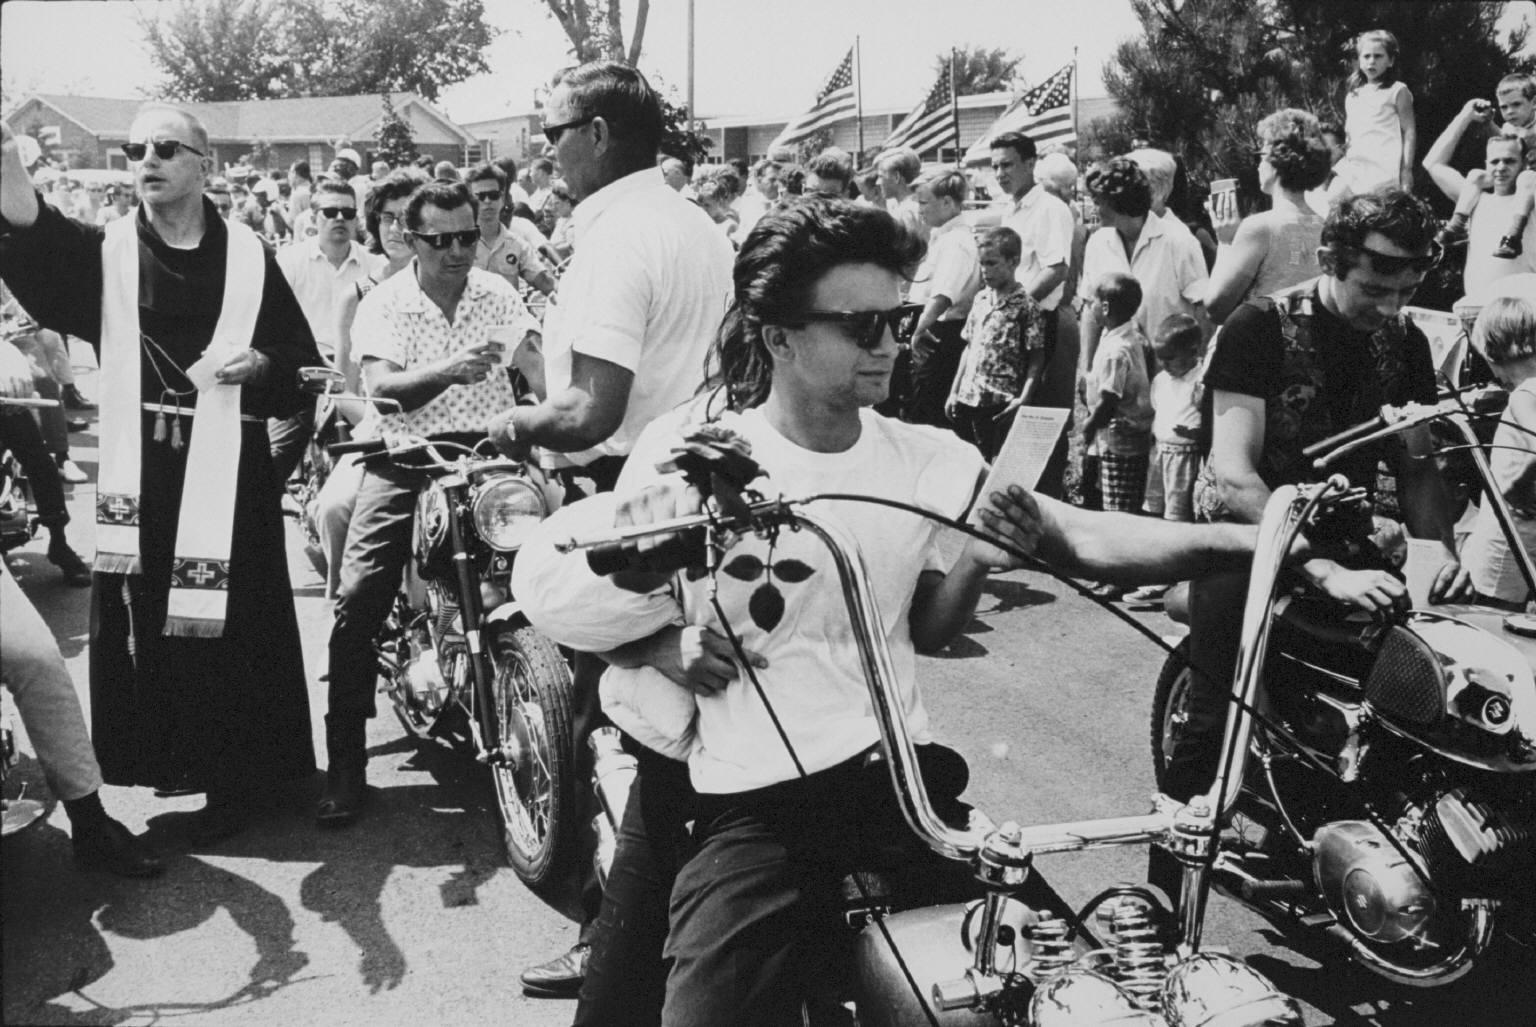 """""""Seventeenth Annual World's Largest Motorcycle Blessing, St. Christopher Shrine, Midlothian, Illinois"""" from The Bikeriders by Danny Lyon."""